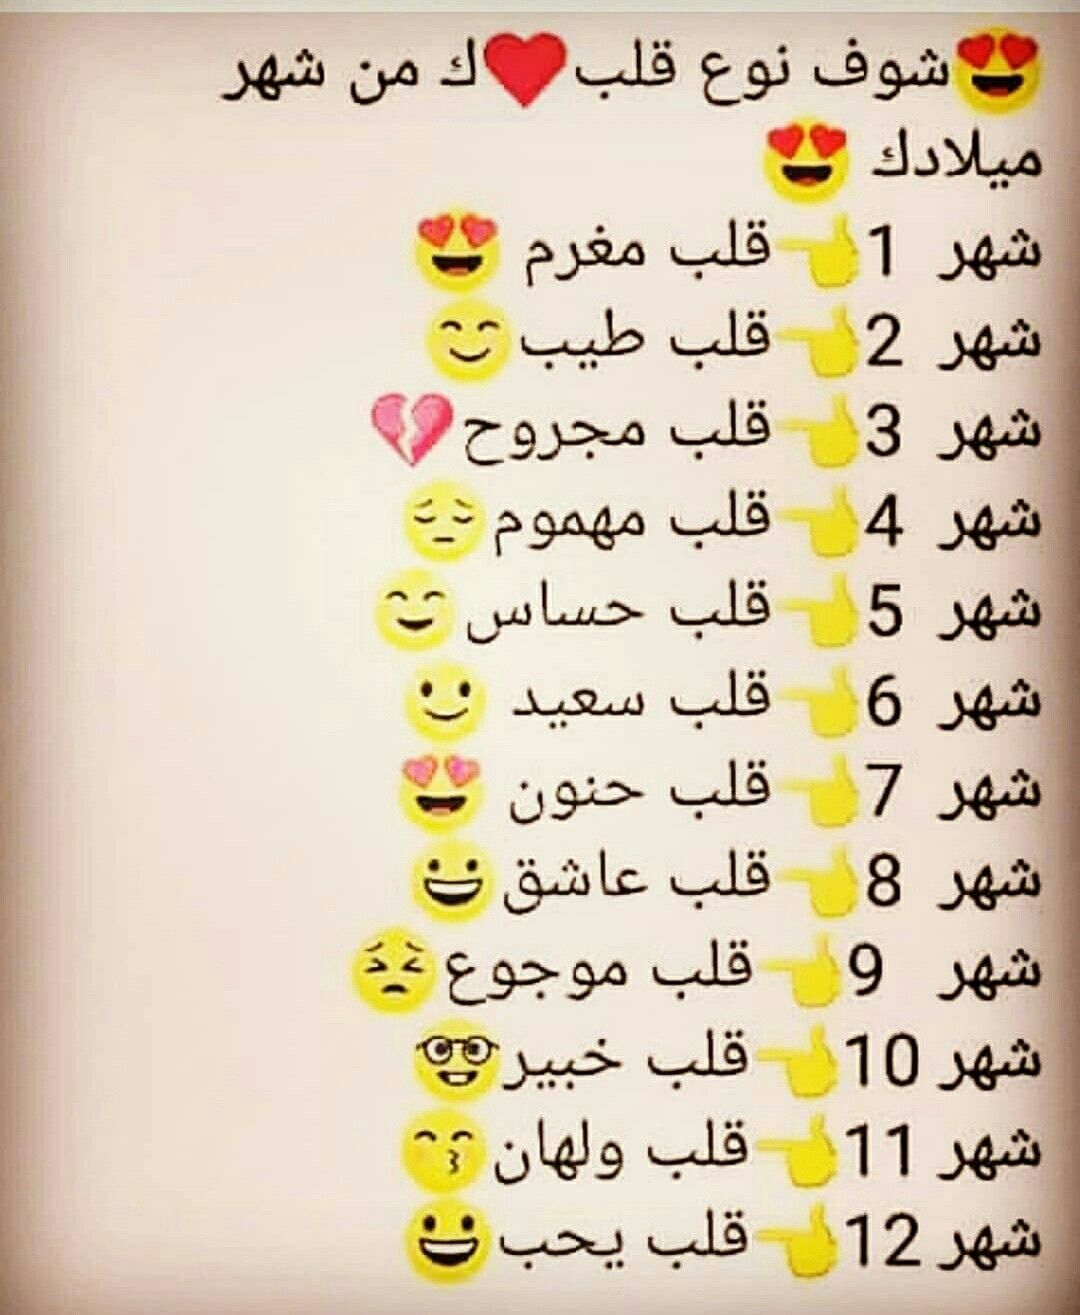 Pin By ڪيوتهه On Funny Laughing Quotes Funny Laughing Quotes Funny Arabic Quotes